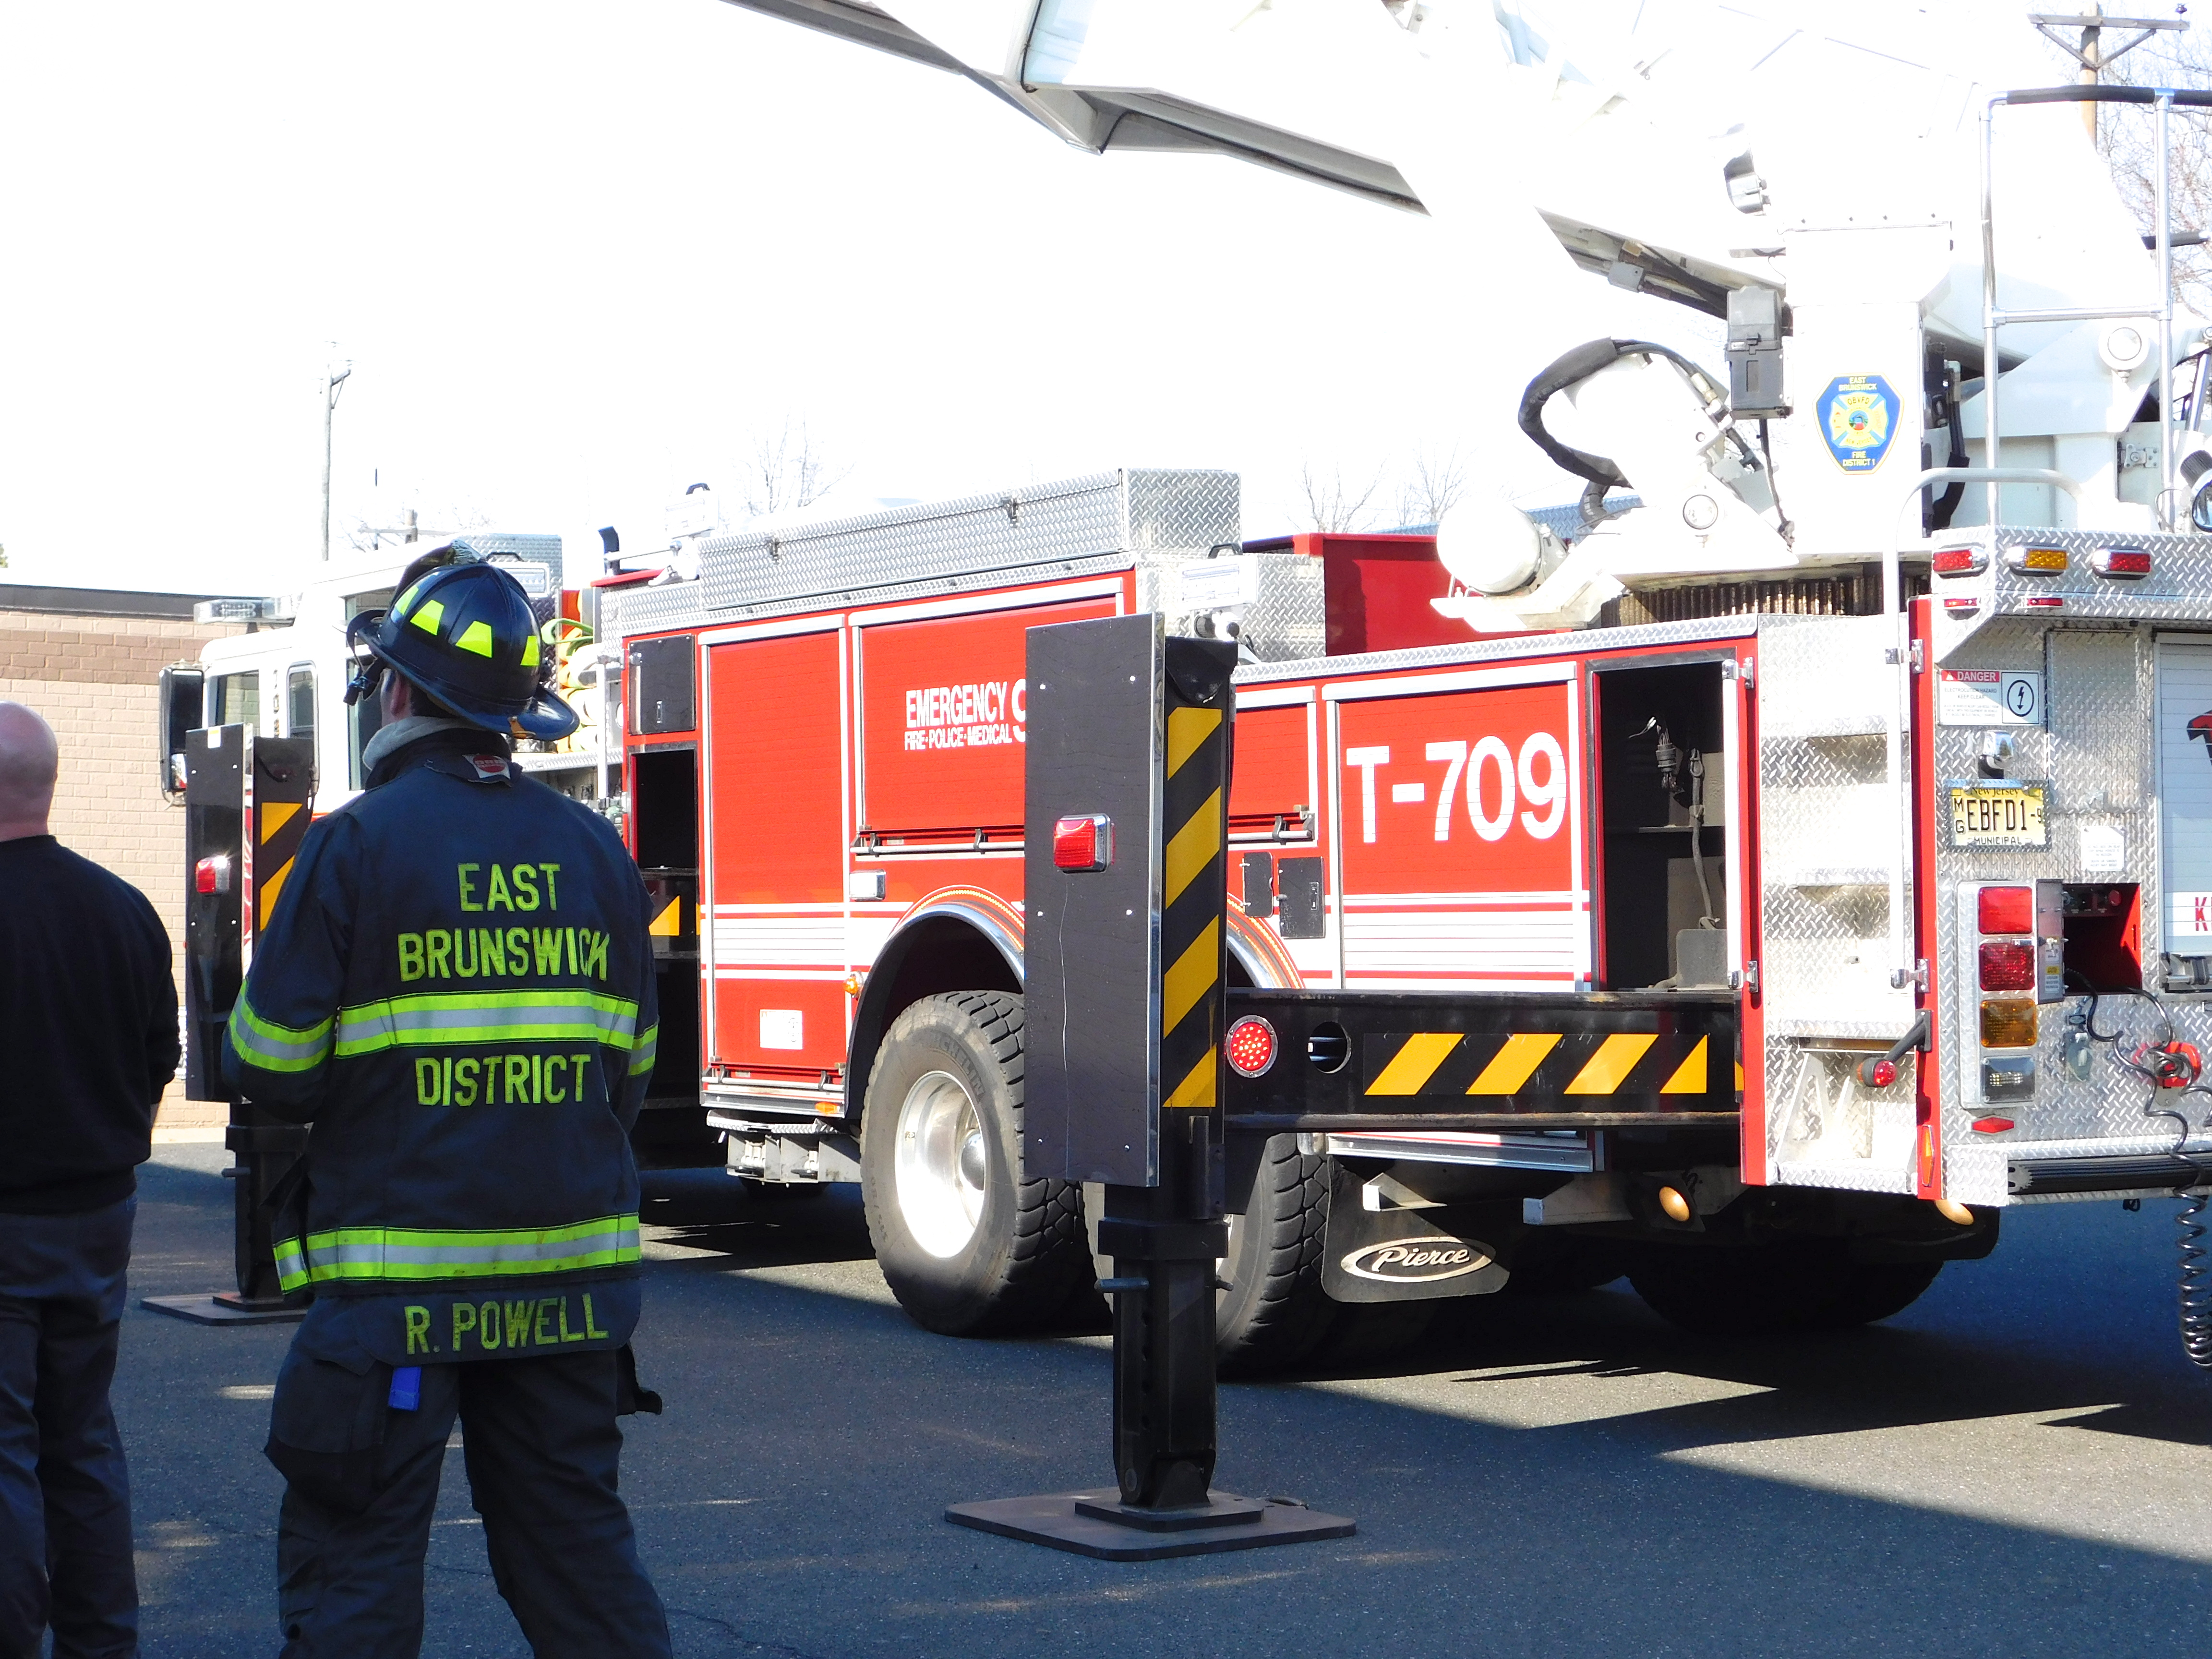 Furniture stores east brunswick nj - Township Worker Is Good Samaritan As Solar Panel Fire Damages A Second East Brunswick Business East Brunswick Nj News Tapinto